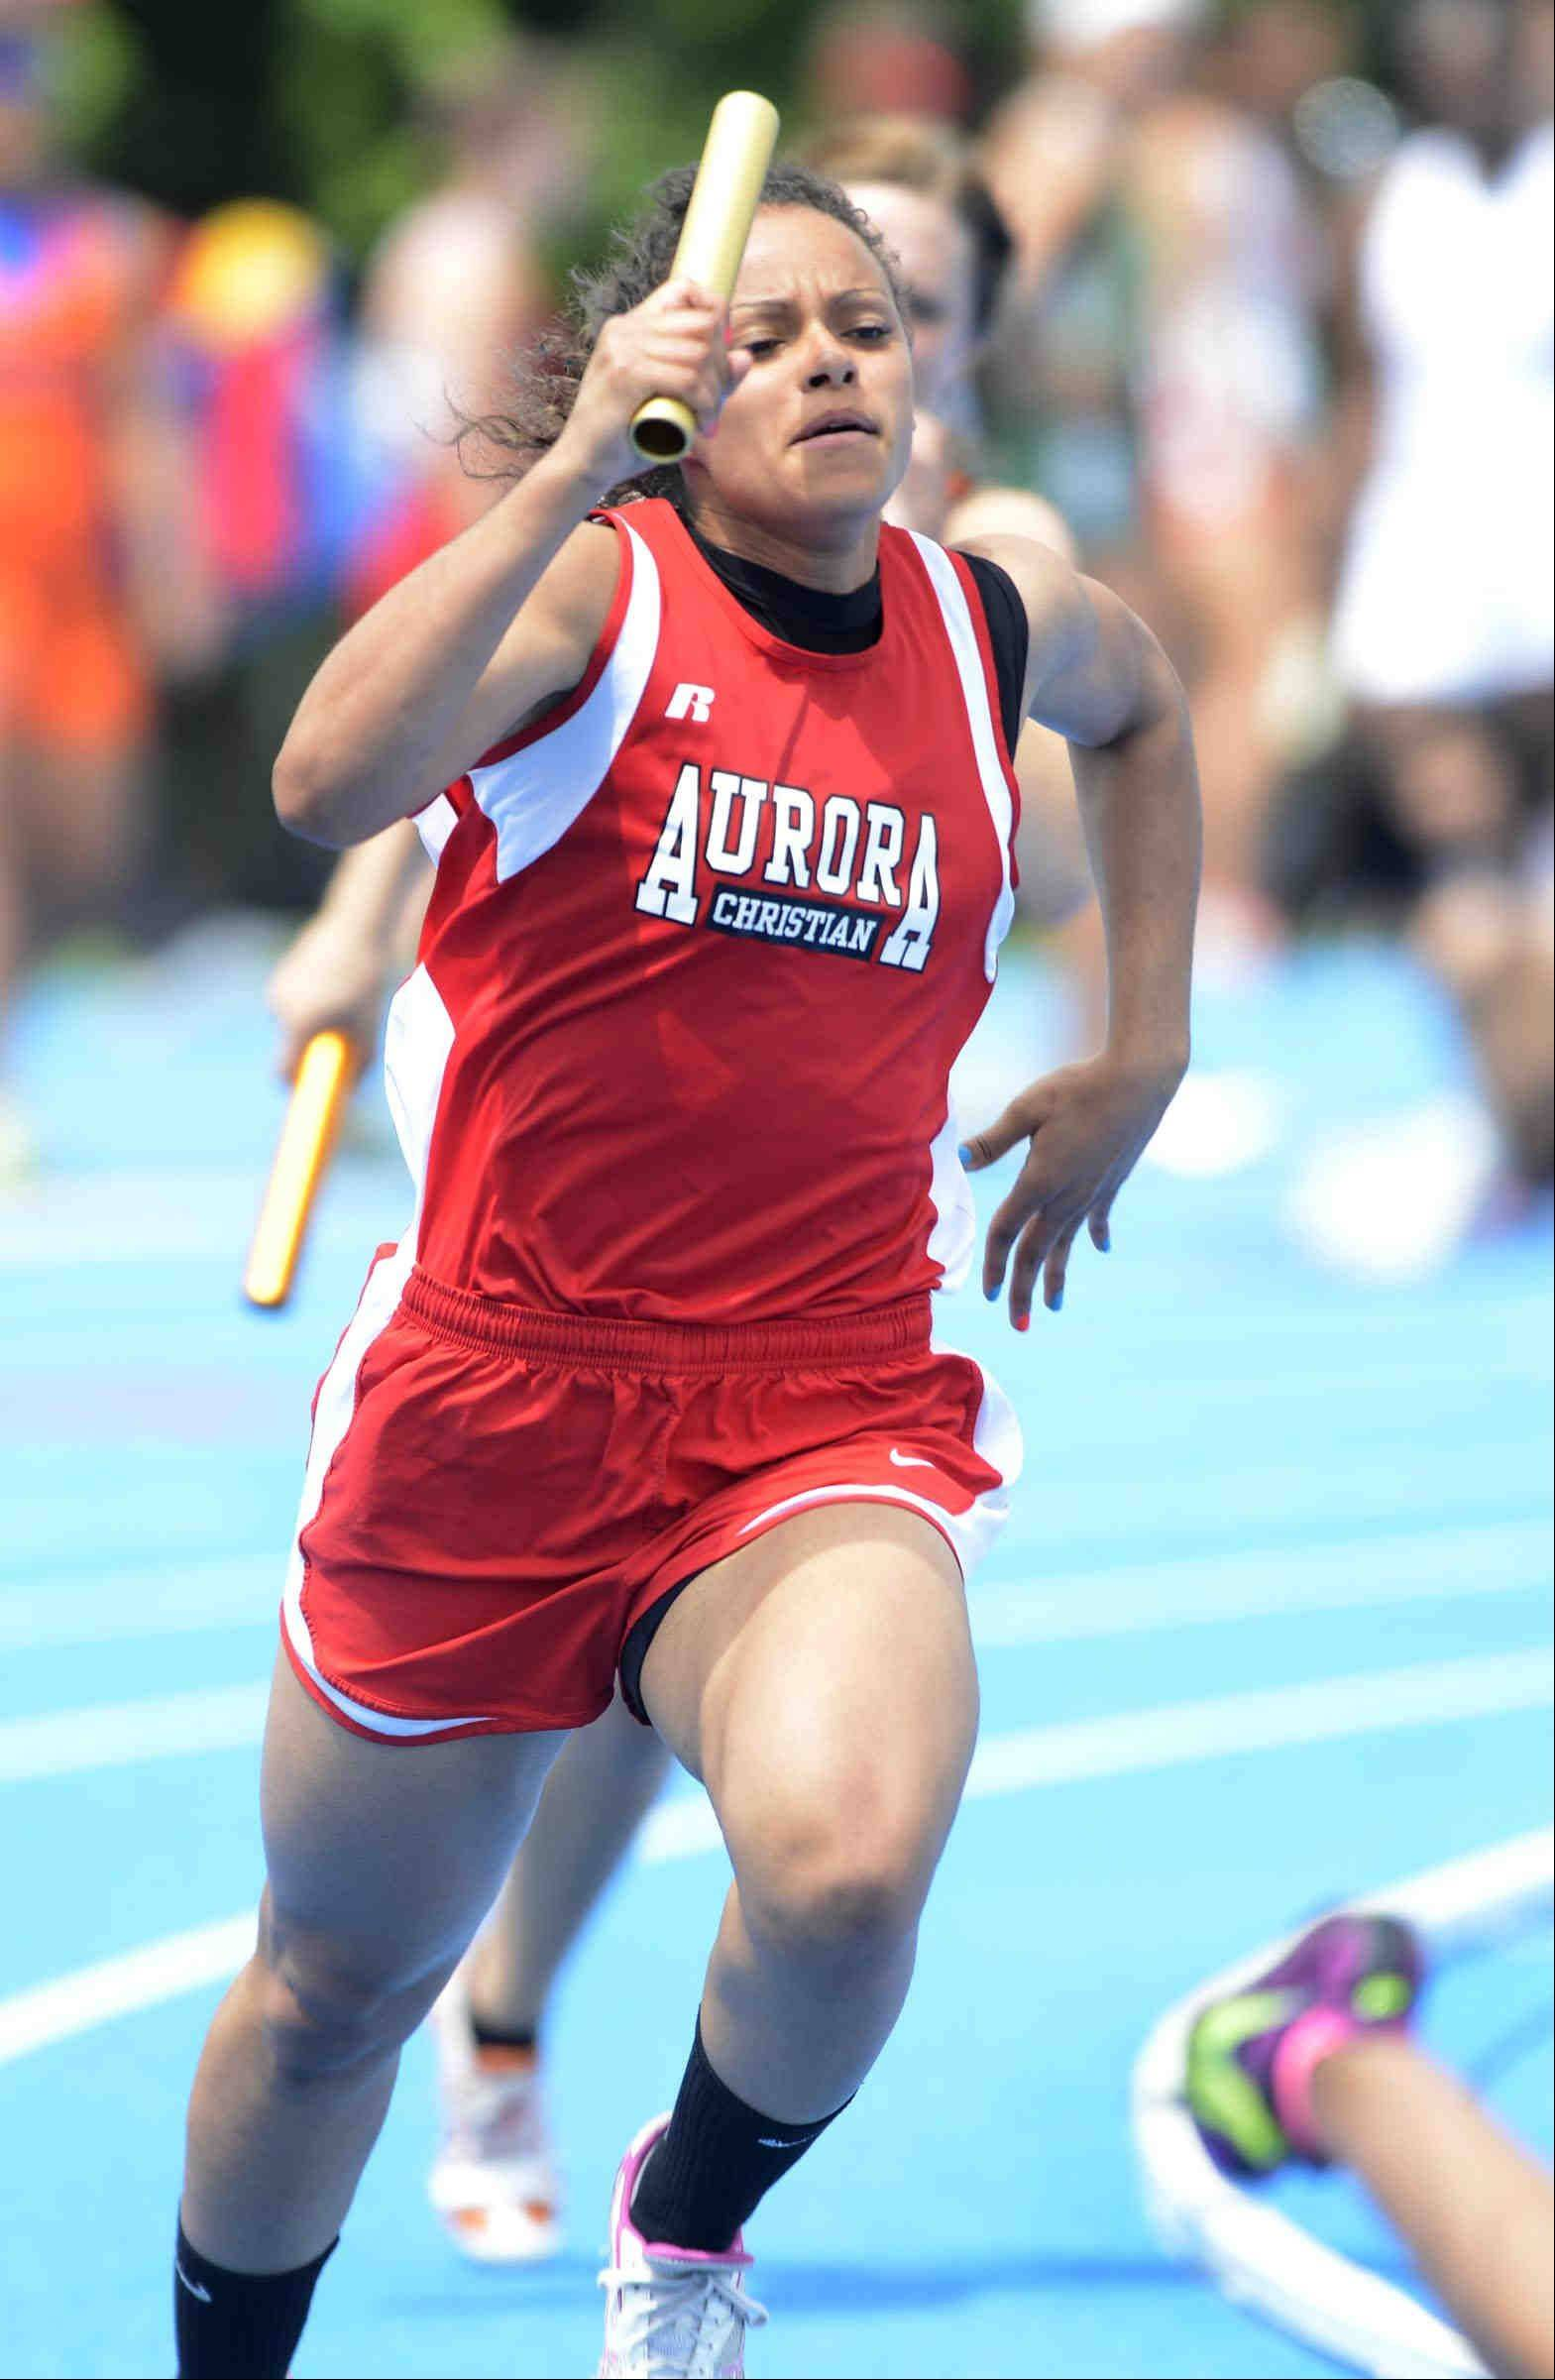 Aurora Christian's Alyssa Andersen runs the first leg of the 400 meter relay.